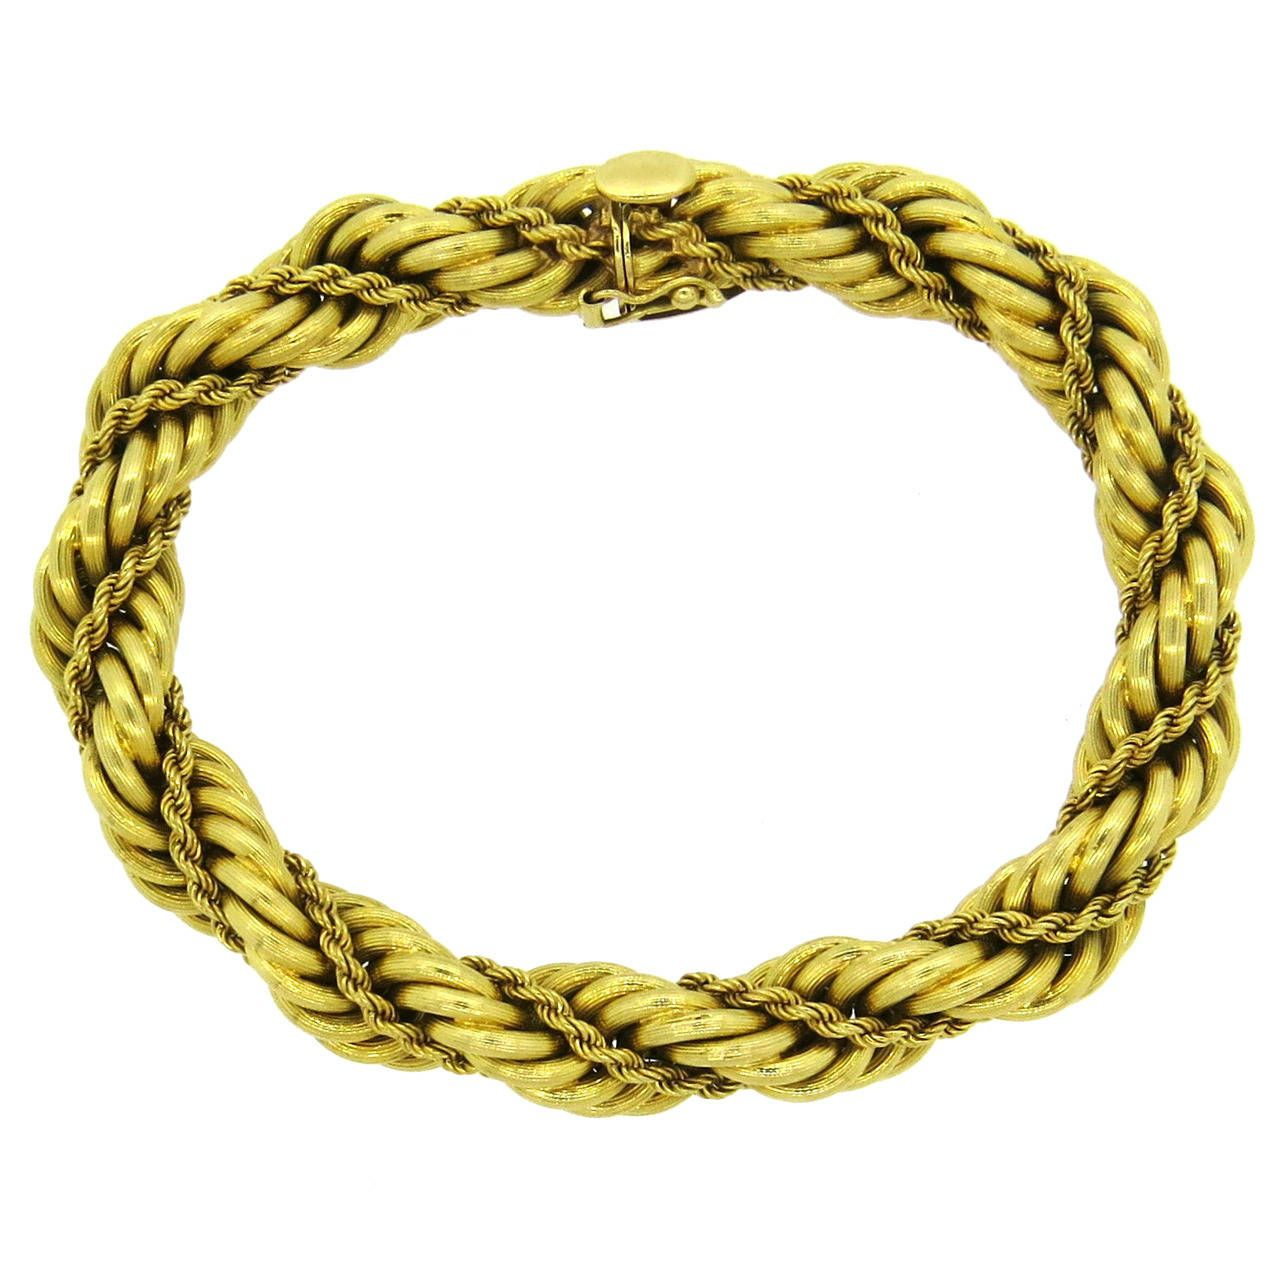 S gold rope bracelet s jewelry bracelets and bracelets